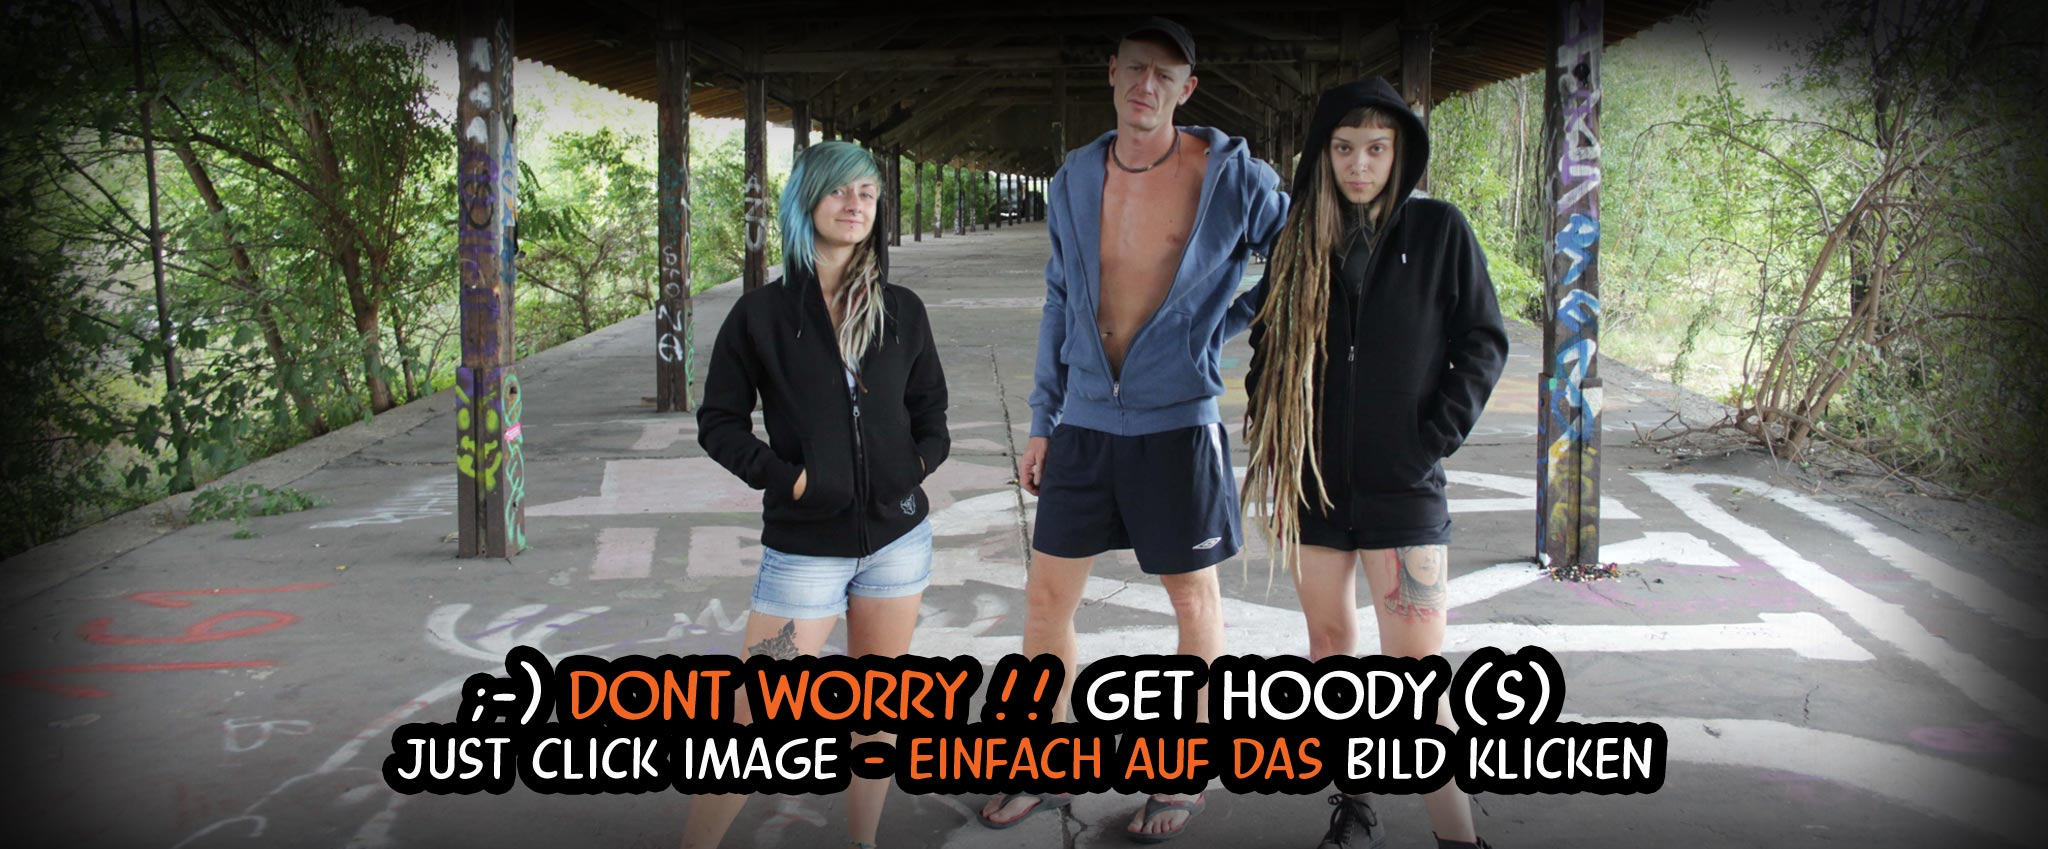 dont worry get hoody